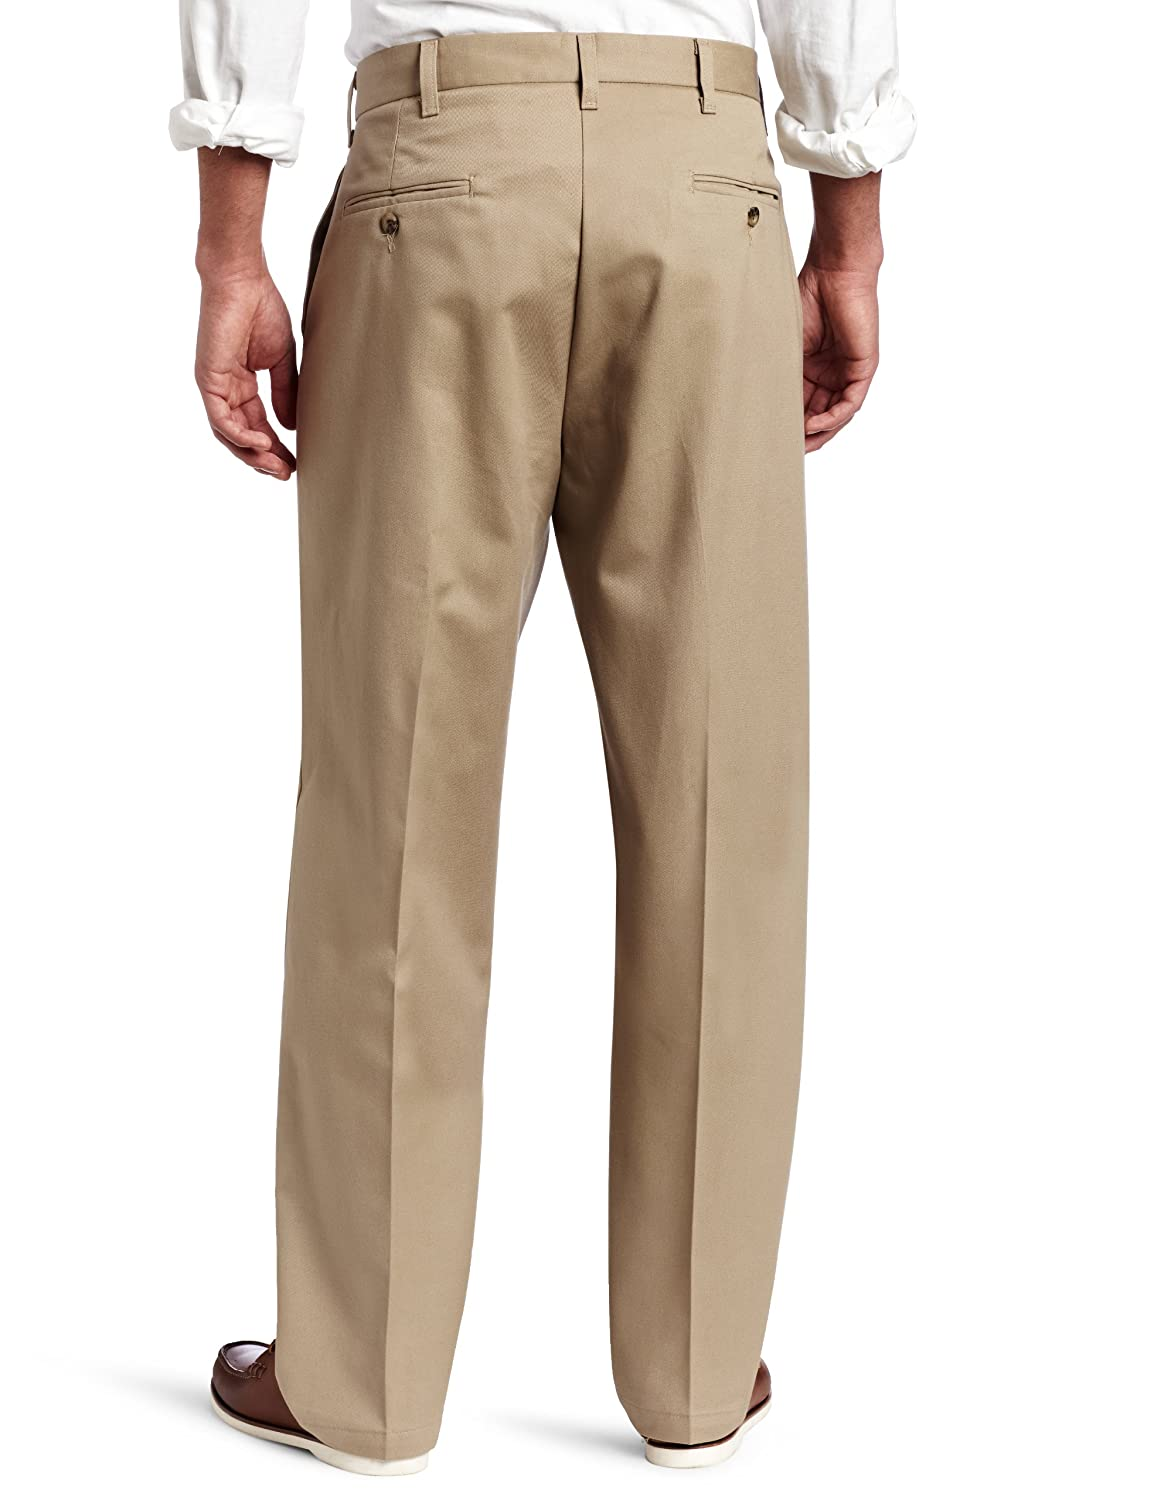 7816540c36 Lee Men's No-Iron Relaxed-Fit Flat-Front Pant at Amazon Men's Clothing  store: